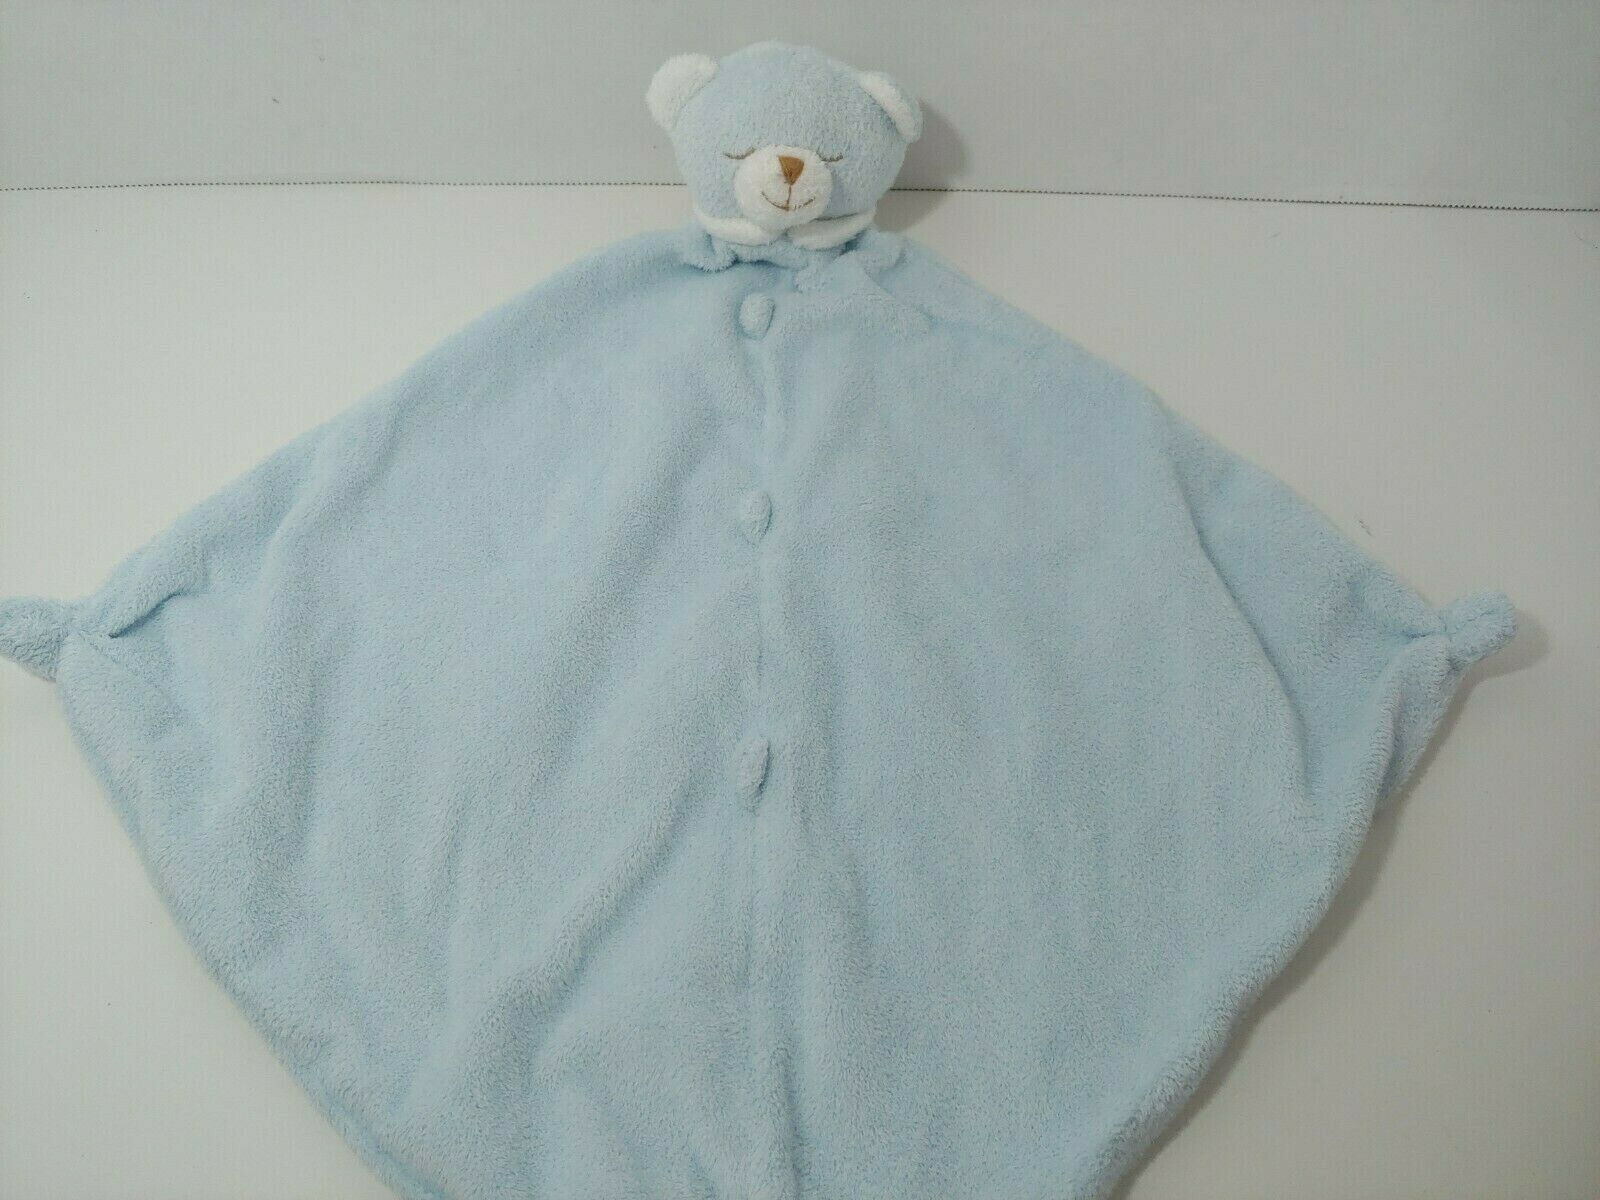 Primary image for Angel Dear plush blue teddy bear Baby Security Blanket Lovey knotted toy